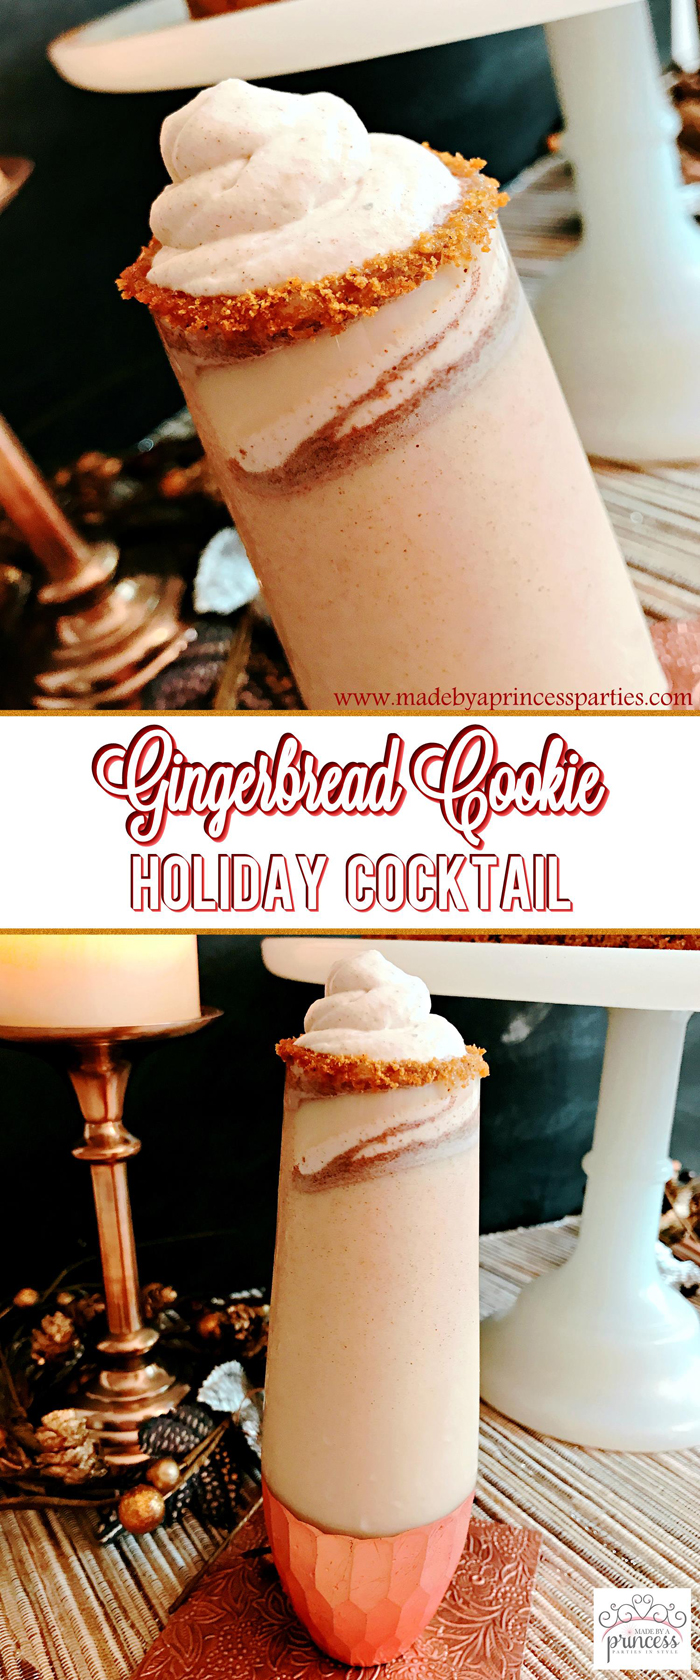 Creamy Gingerbread Cookie Holiday Cocktail Recipe Pin for Later Made by a Princess #gingerbreadcocktail